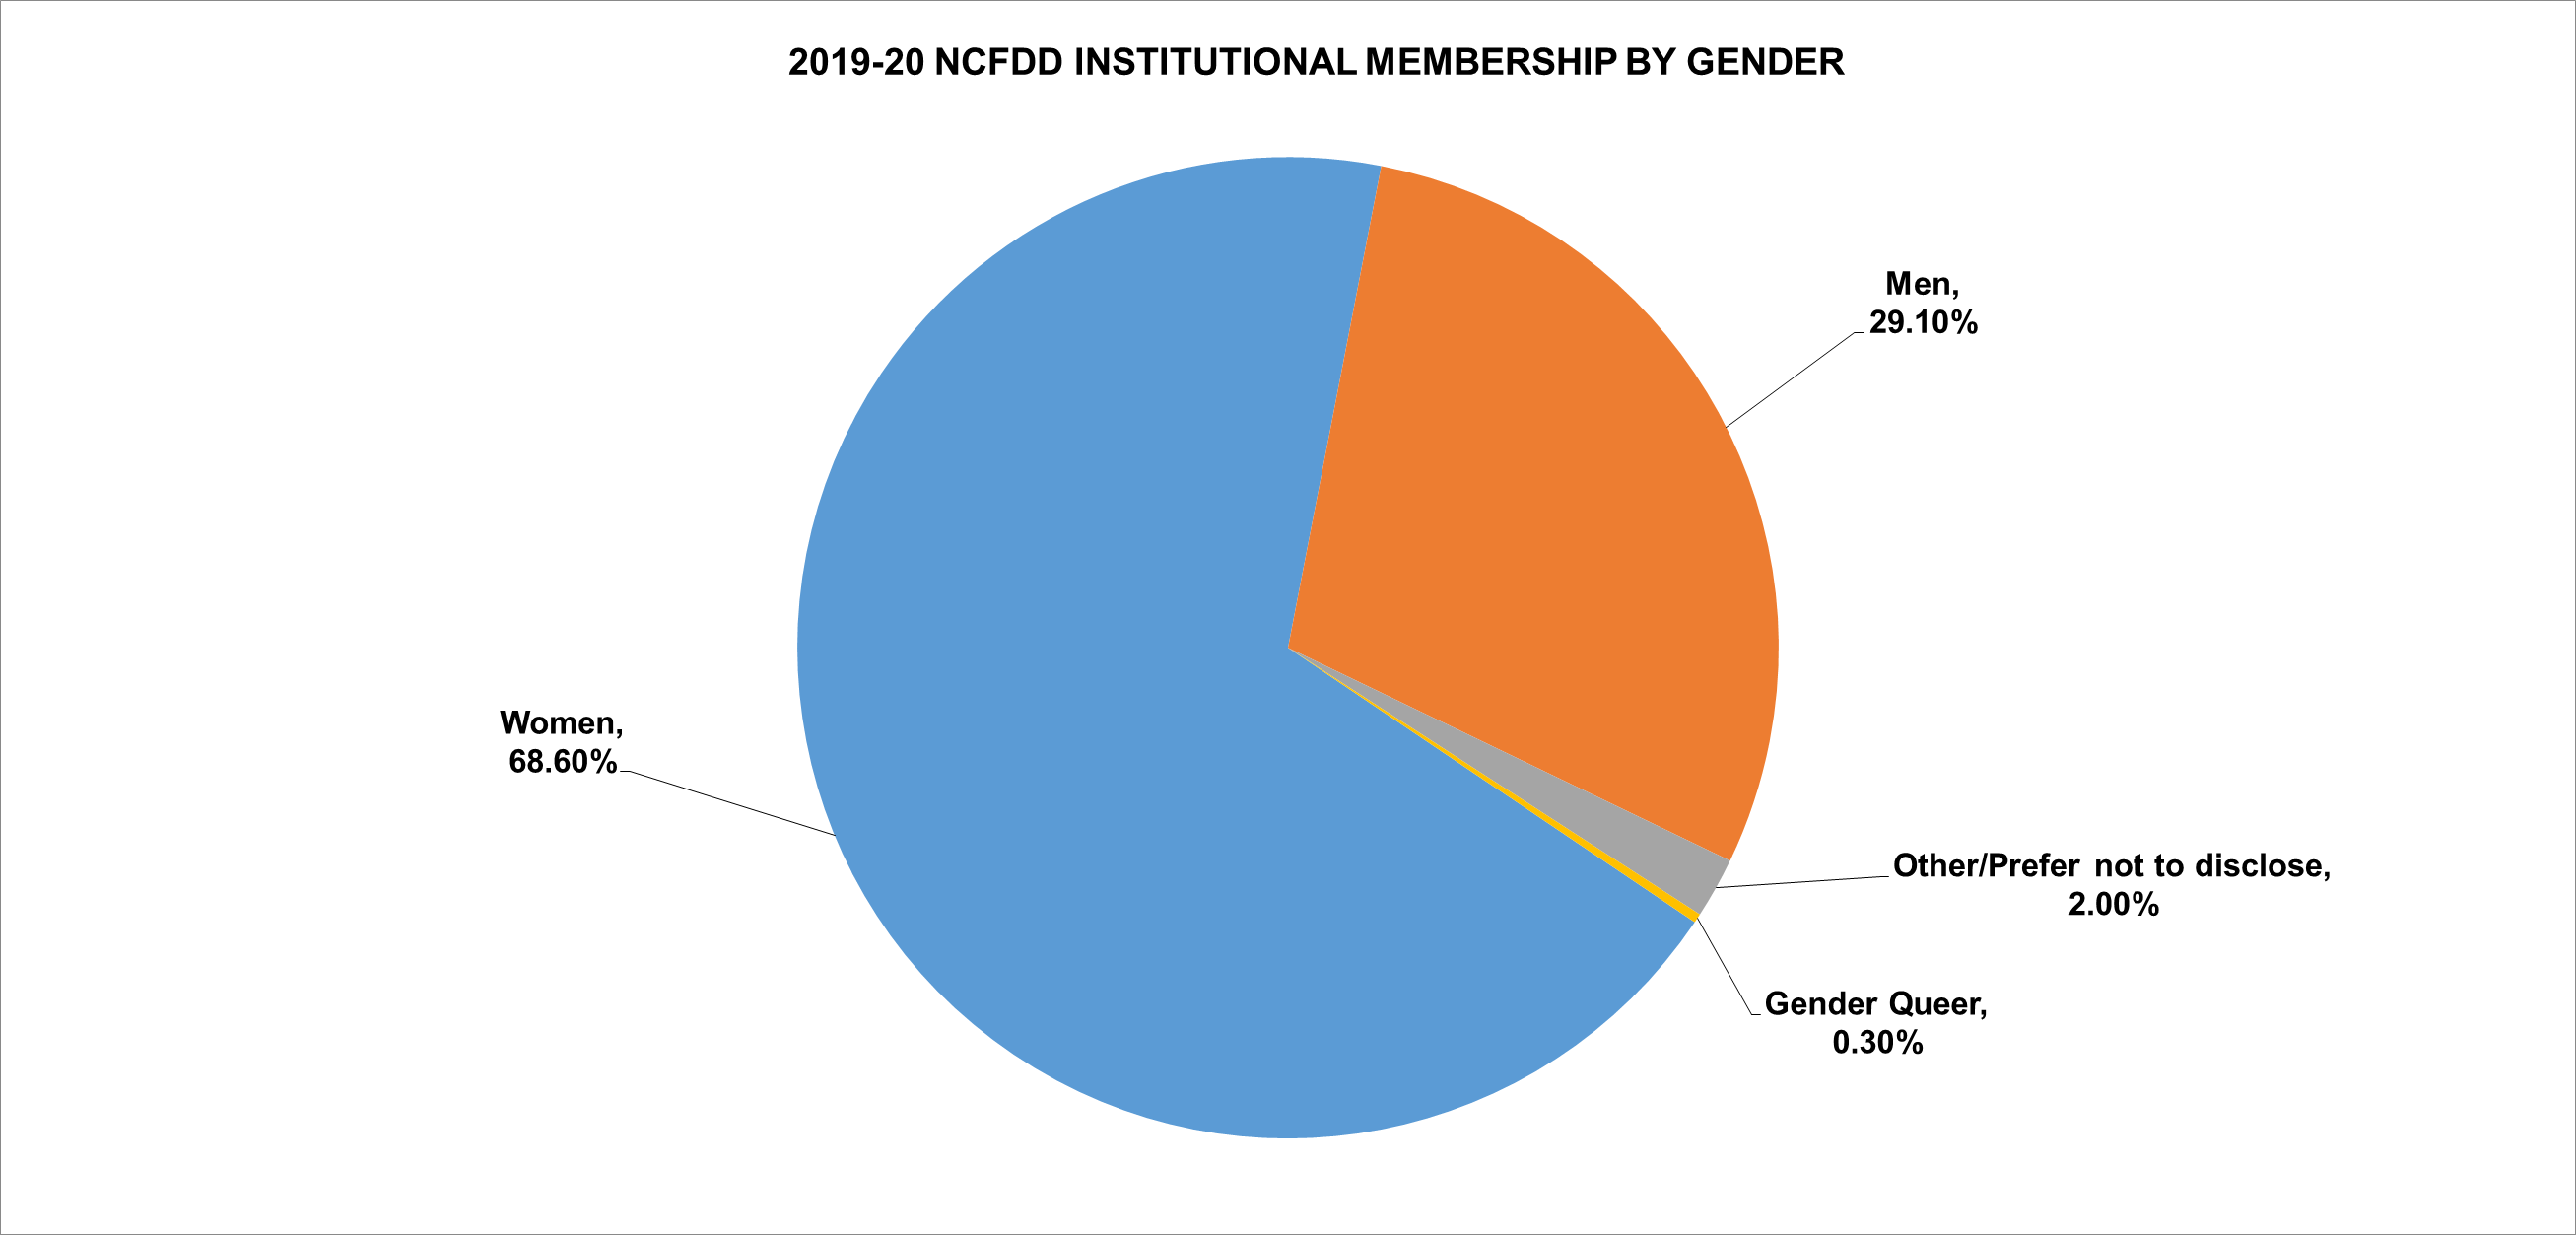 2019-20 NCFDD Institutional Membership by Gender